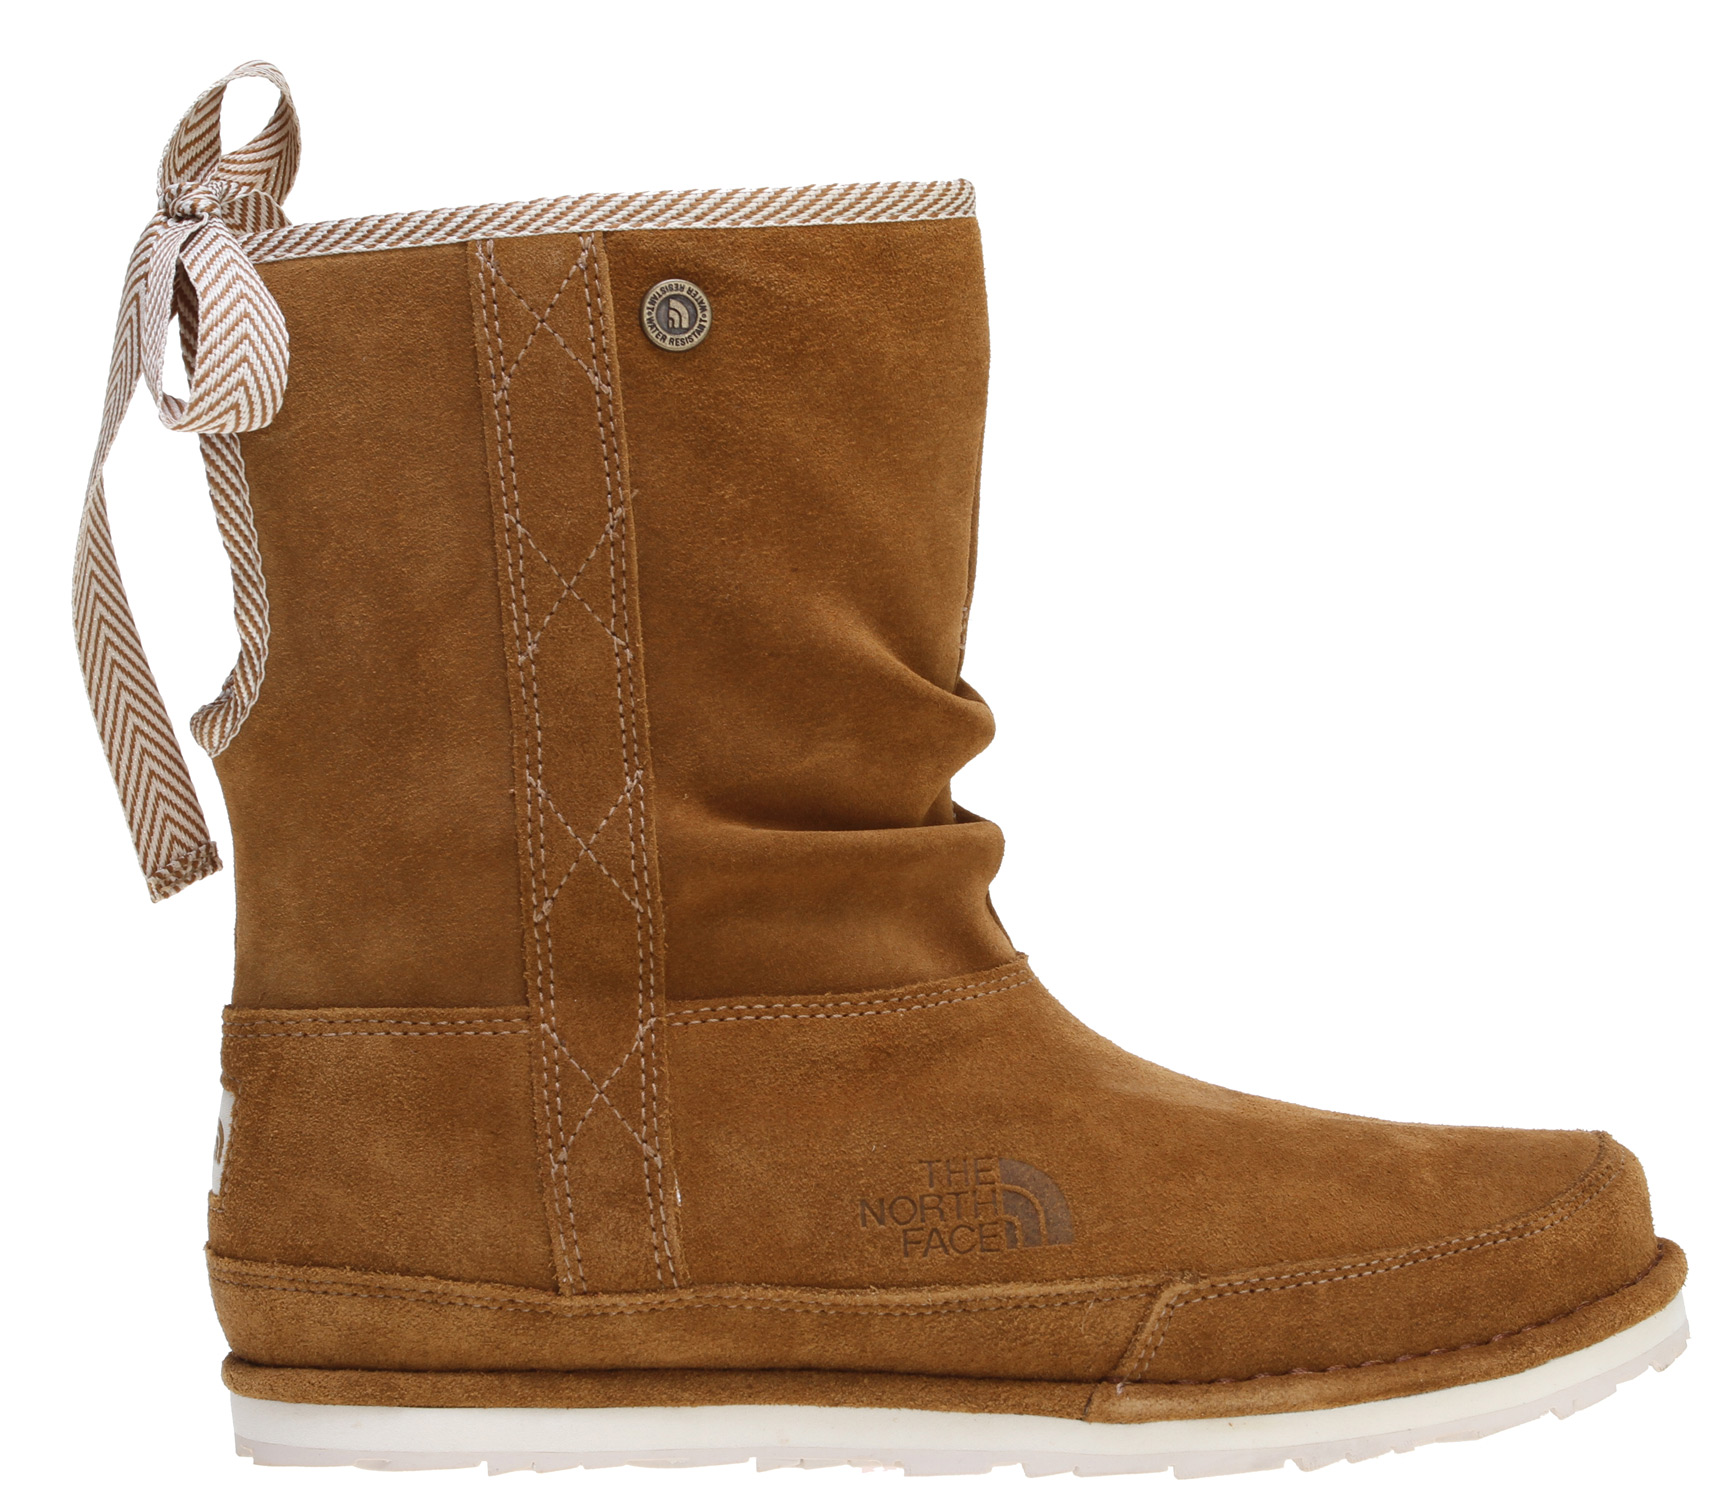 Pull on the warmth and comfort this winter with this new low-cut winter boot. Waterproof, durable suede upper pairs with ample insulation to combat winter's chill. Adjustable cuff can be cinched down (via tie at back) or worn upright. Keyhole cuff detail at back.Key Features of The North Face Millennial Short Boots: [UPPER] Durable, waterproof suede upper 200 g Heatseeker insulation Waterproof construction Pull-on construction for easy on/off Adjustable cuff height can be worn up or down Combination comfortable quilted nylon and brushed tricot lining Northotic footbed [BOTTOM] Die-cut EVA midsole Durable, 40% recycled rubber outsole - $76.95